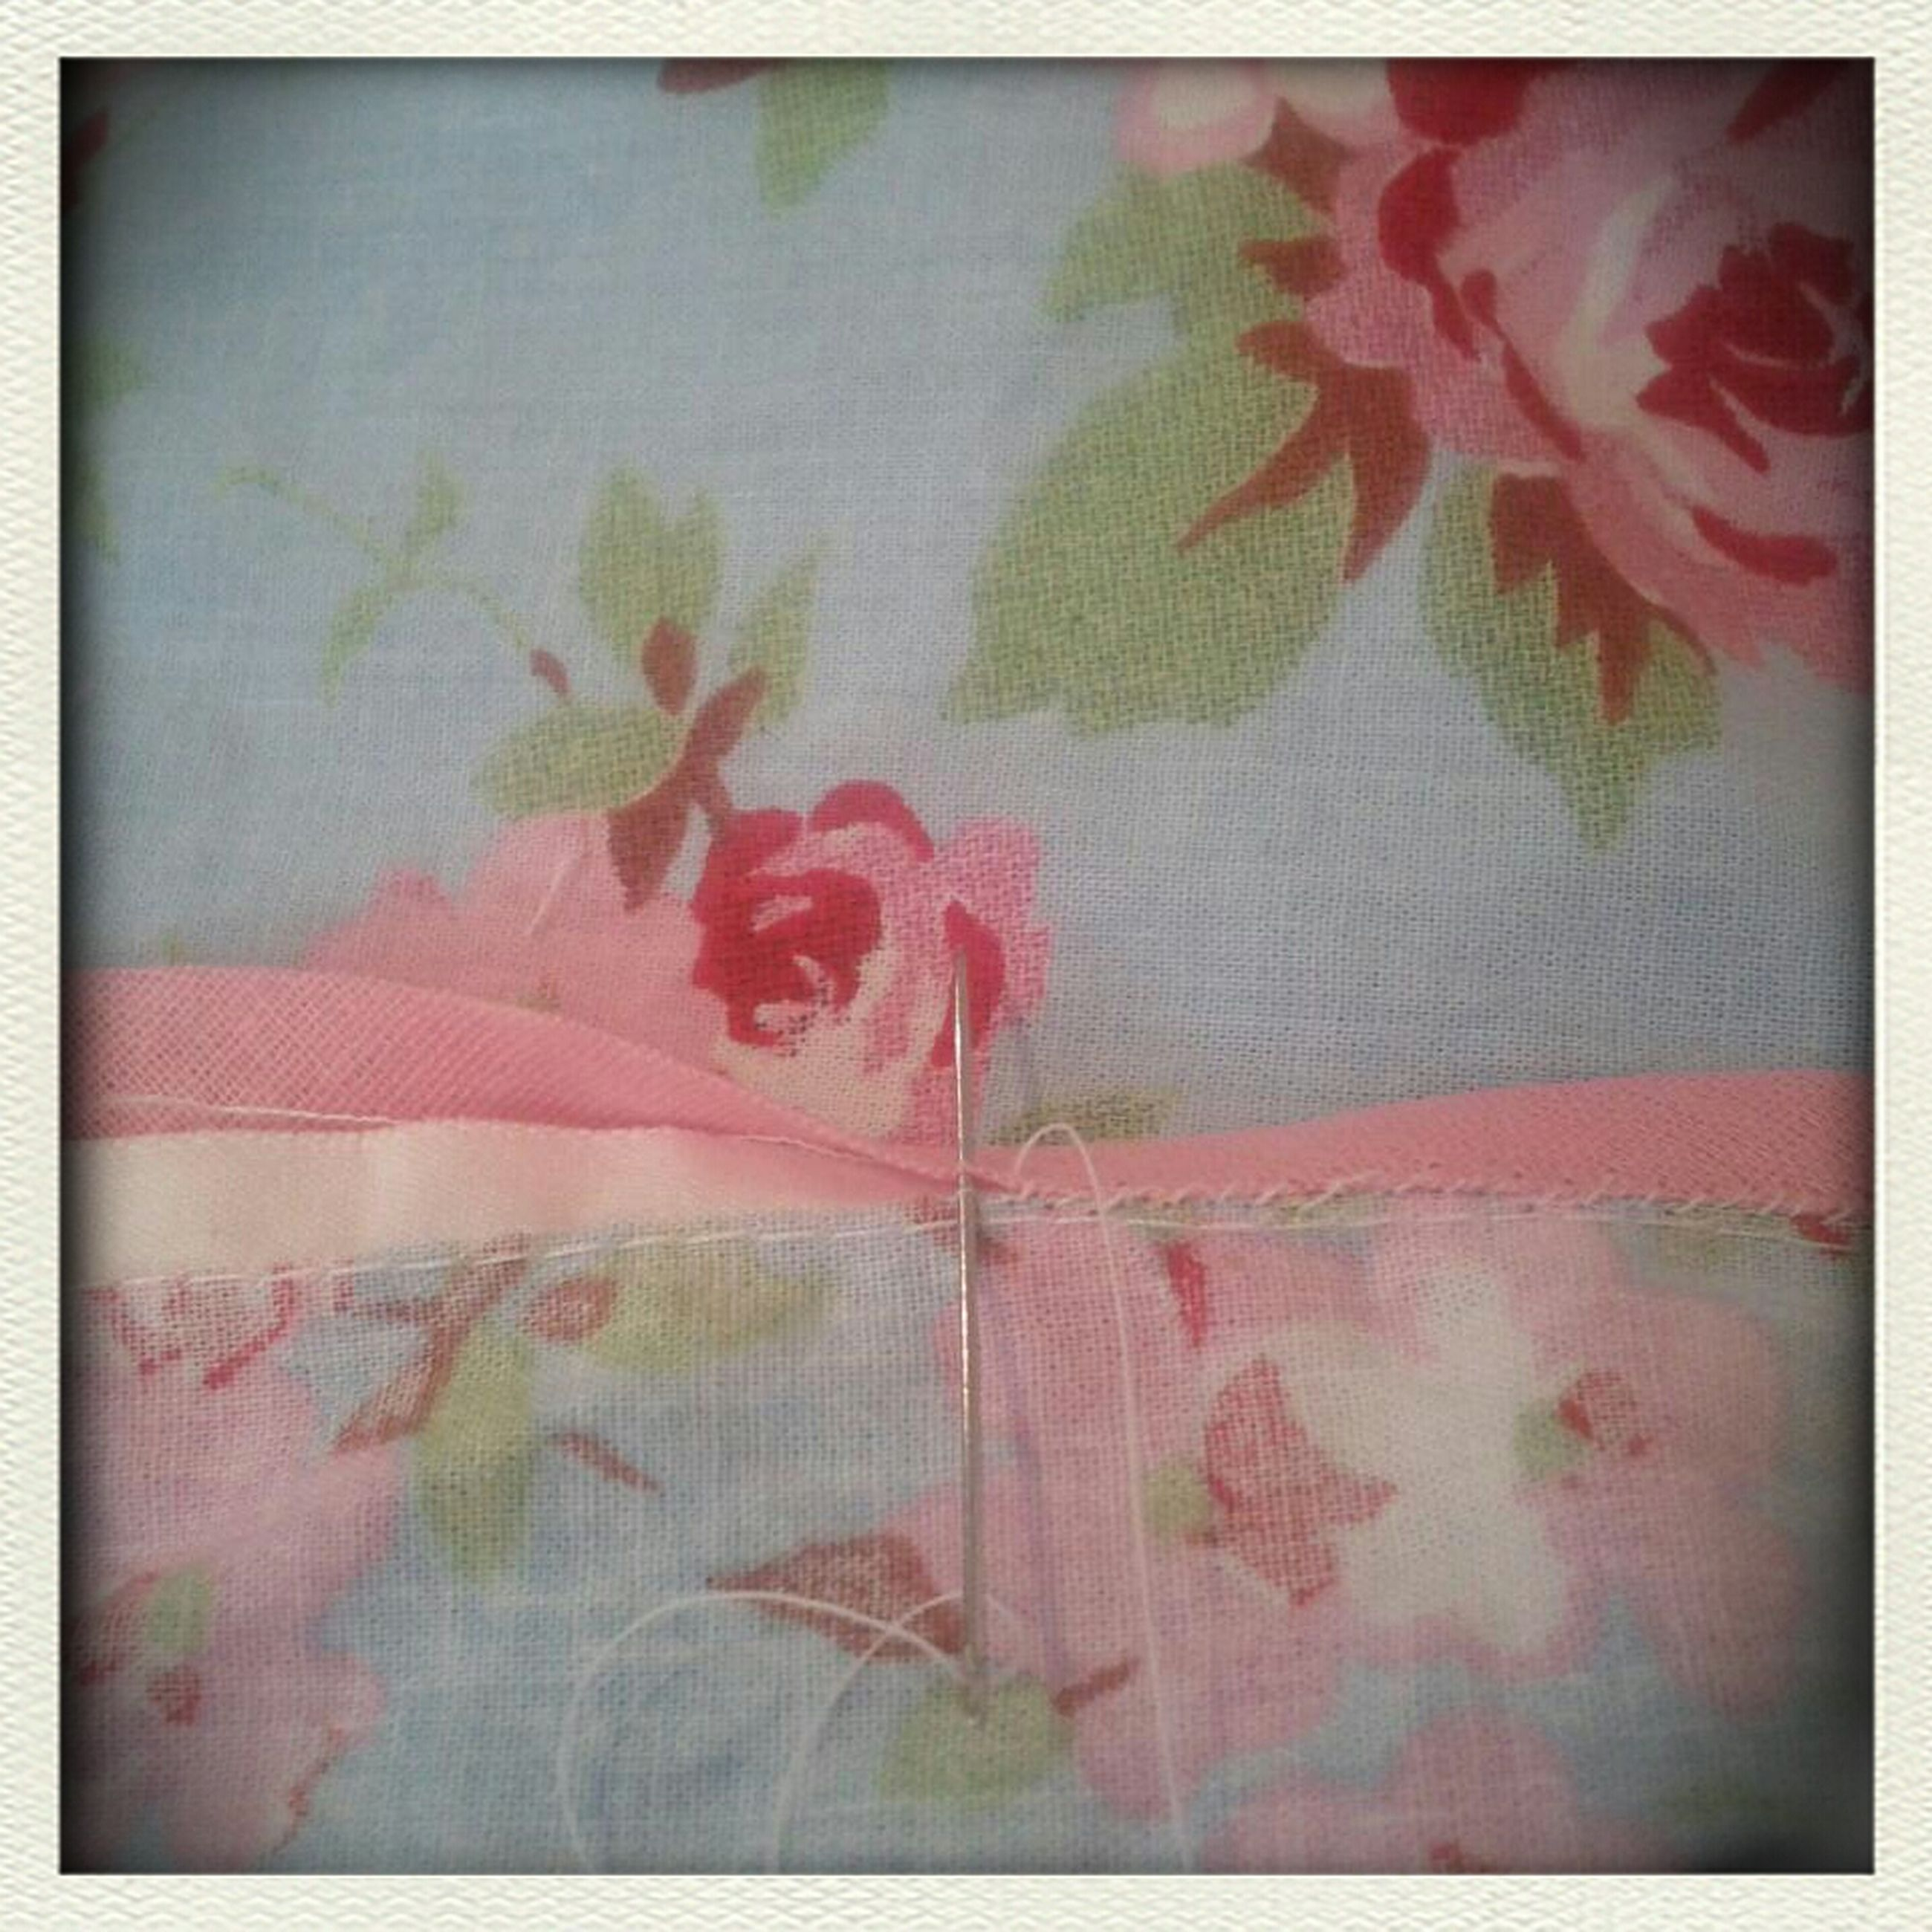 transfer print, indoors, auto post production filter, wall - building feature, leaf, close-up, full frame, red, wall, multi colored, backgrounds, creativity, textile, flower, fabric, art, textured, pink color, pattern, no people